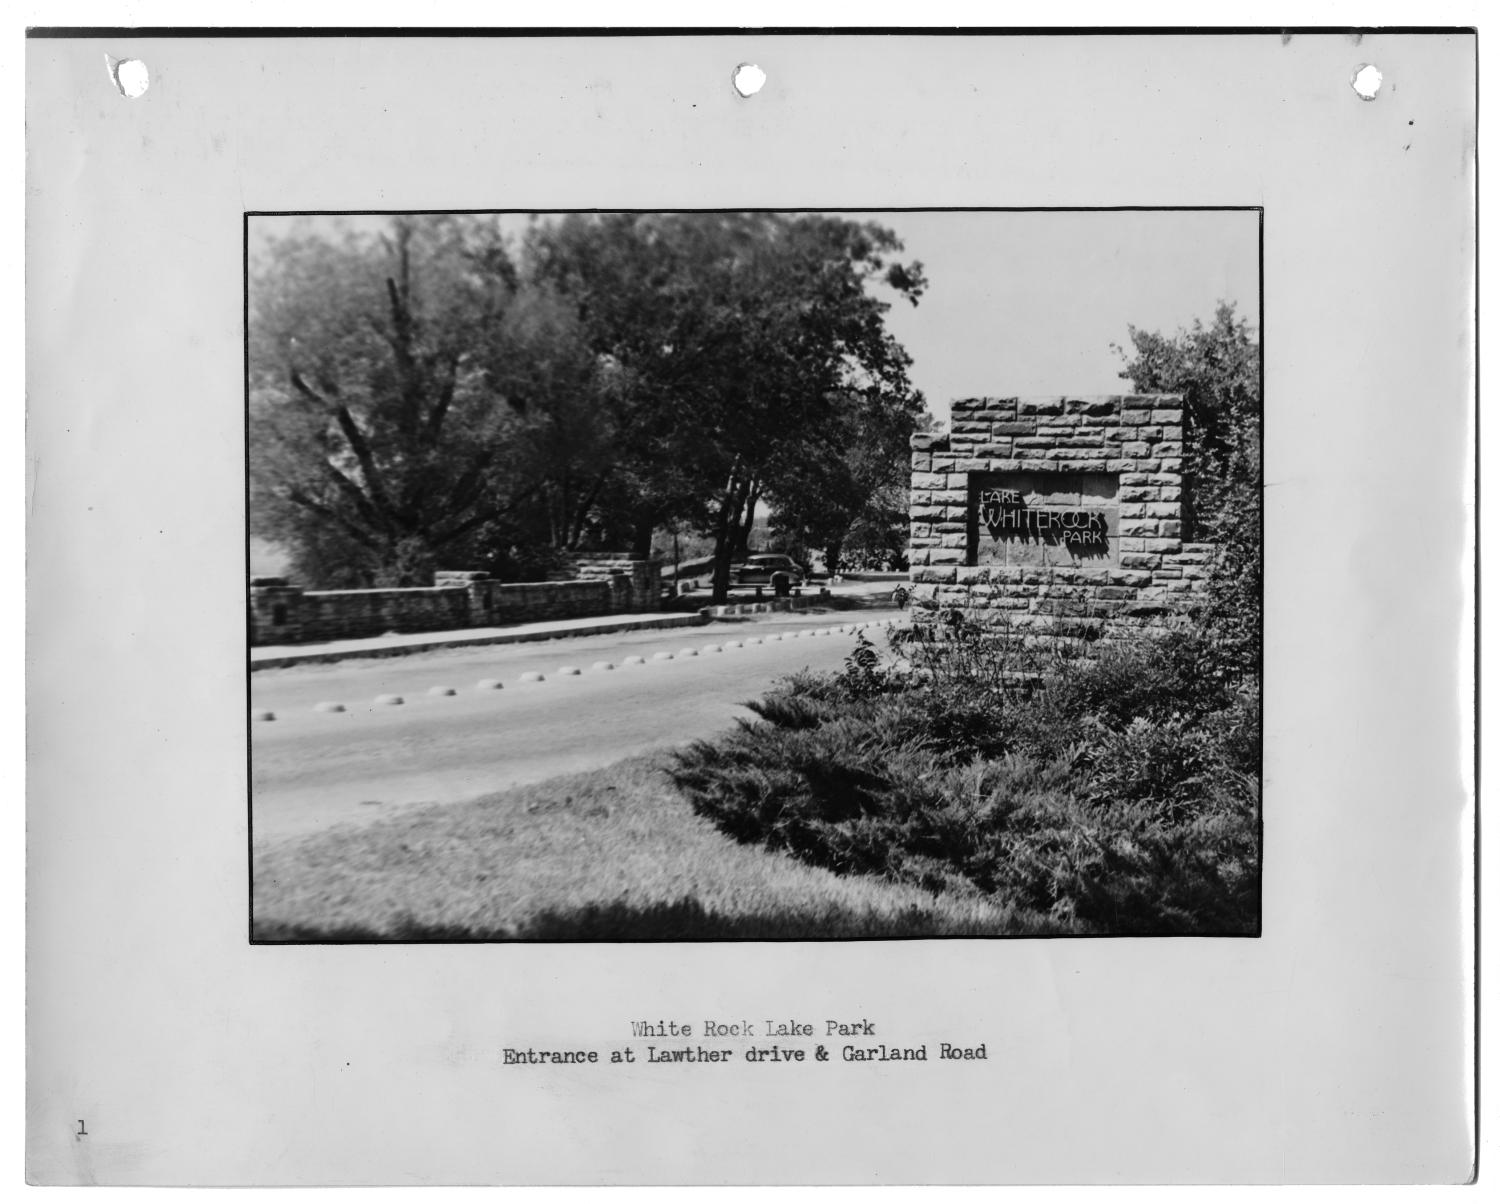 """[Photograph of White Rock Lake Park Garland Road Entrance], Photograph of a driveway leading into White Rock Lake Park. There stone column with the park name on the right side of the drive, in the foreground; theres a small stone wall lining the opposite side of the drive. There are bushes in front of the sign and trees visible in the background. The photograph is attached to a page labeled """"1""""; text under the image says """"White Rock Lake Park, Entrance at Lawther drive & Garland Road."""","""